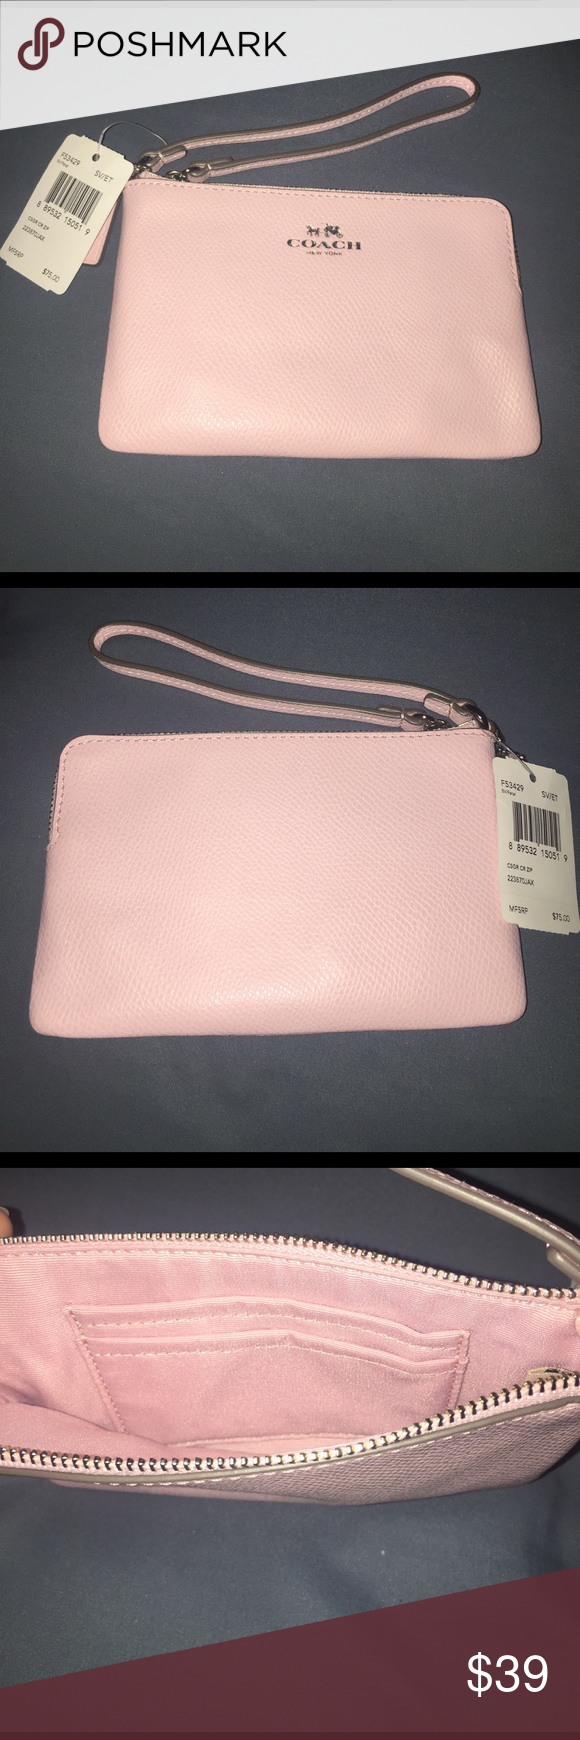 Brand new Coach wristlet! Limited edition color! Brand new Coach wristlet!  Perfect for everyday use to a night out, beautiful limited edition rose color. Brand new with tags! Coach Bags Clutches & Wristlets